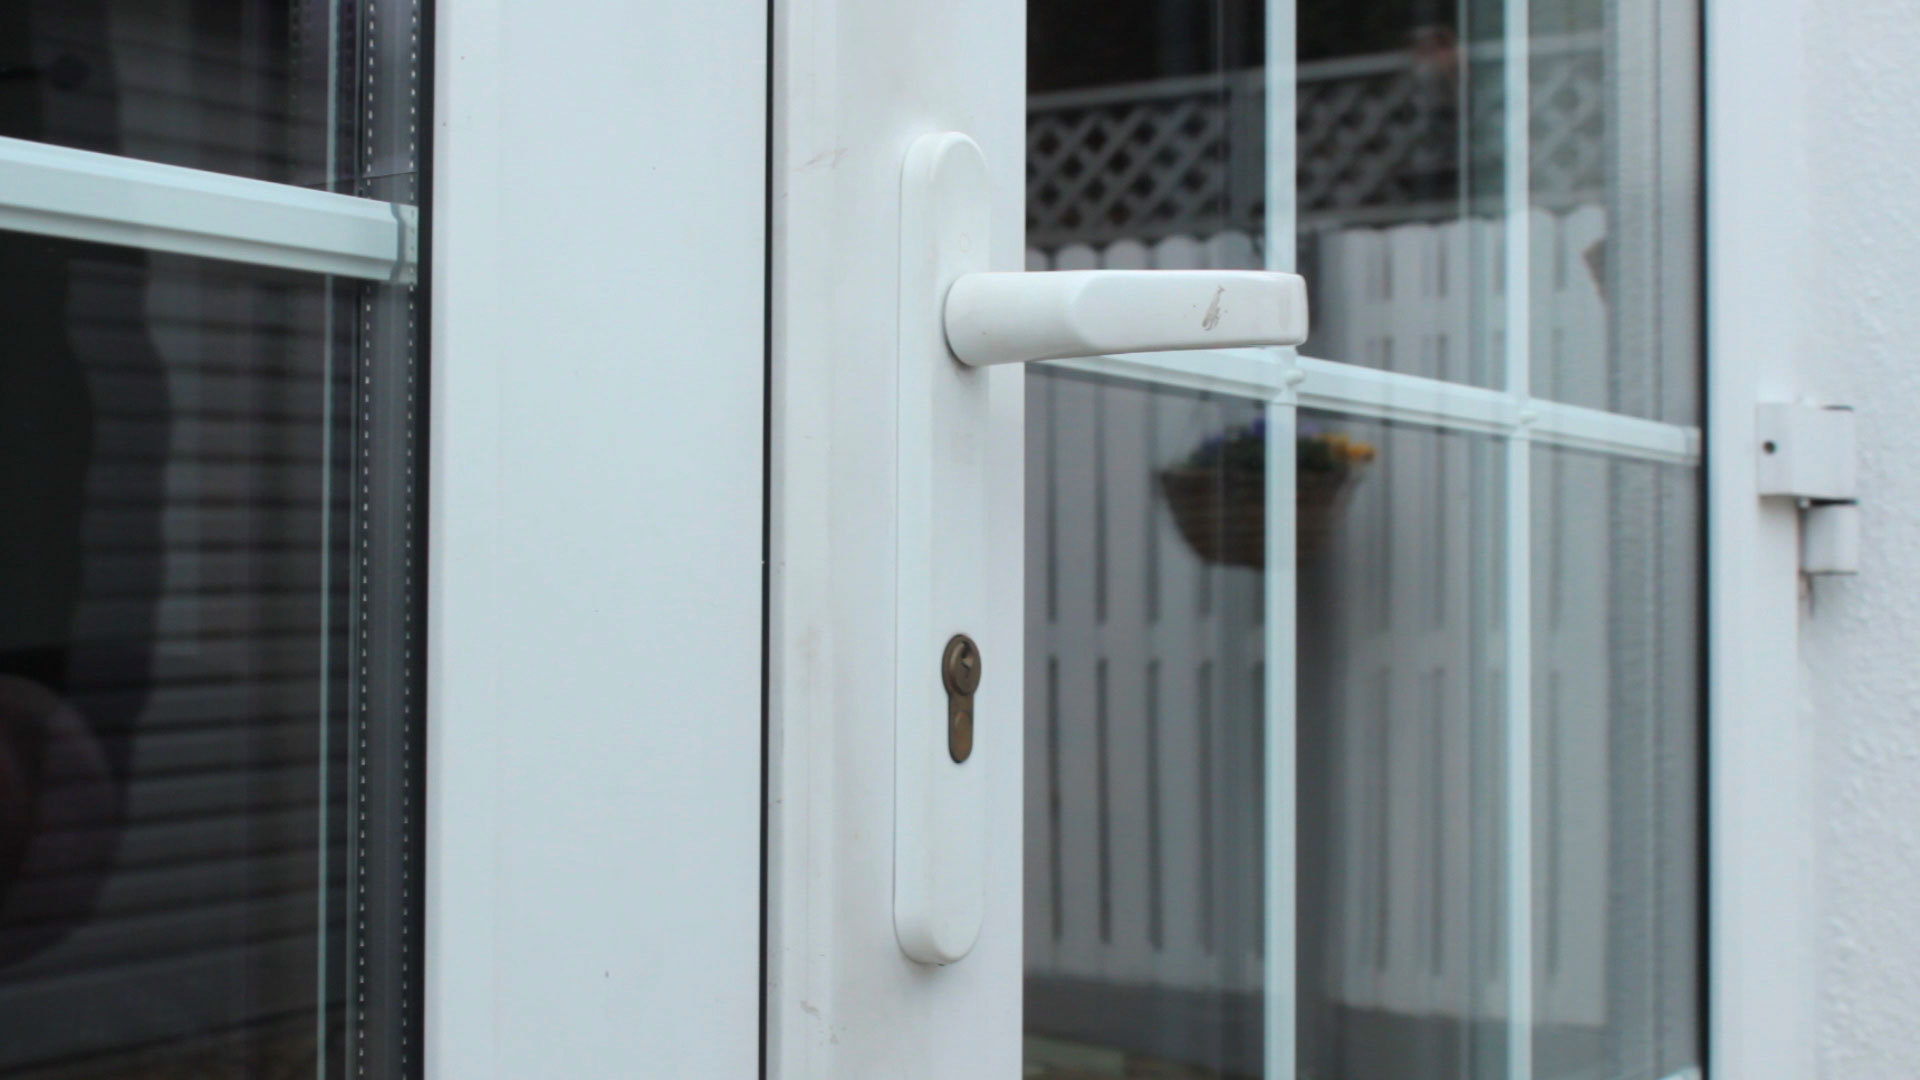 Securing french doors zentry forced entry solutions uk opening unlocked french doors rubansaba